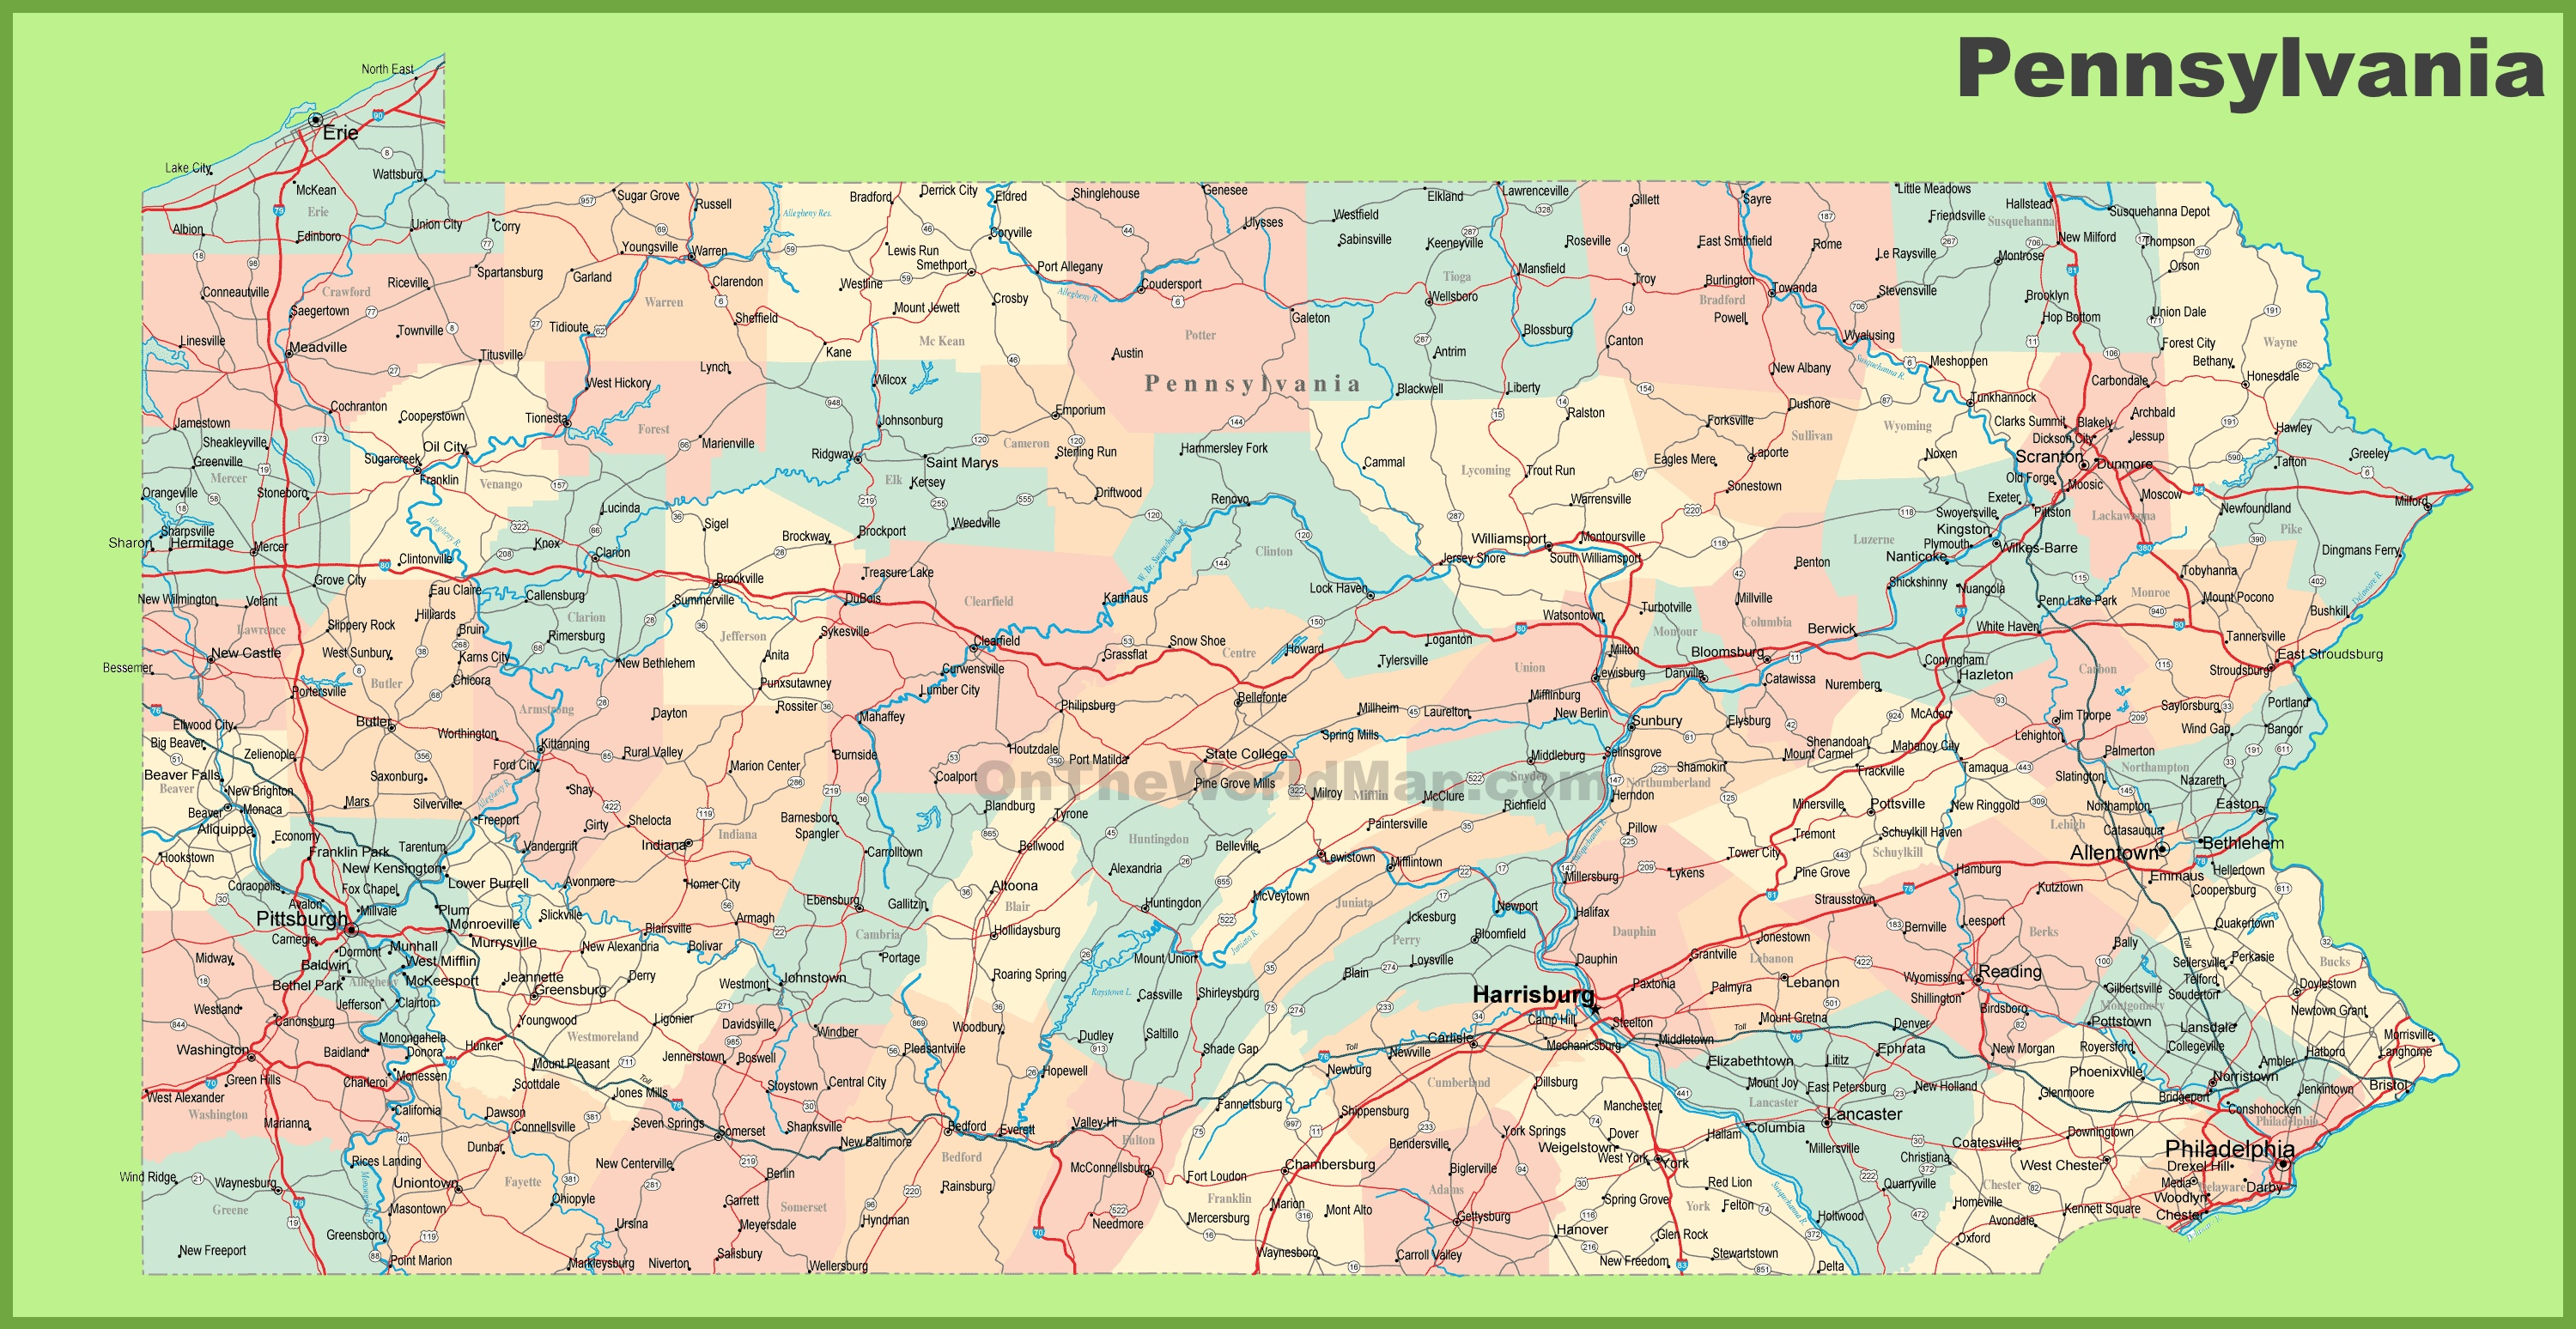 Road Map Of Pennsylvania With Cities - Road map of pennsylvania